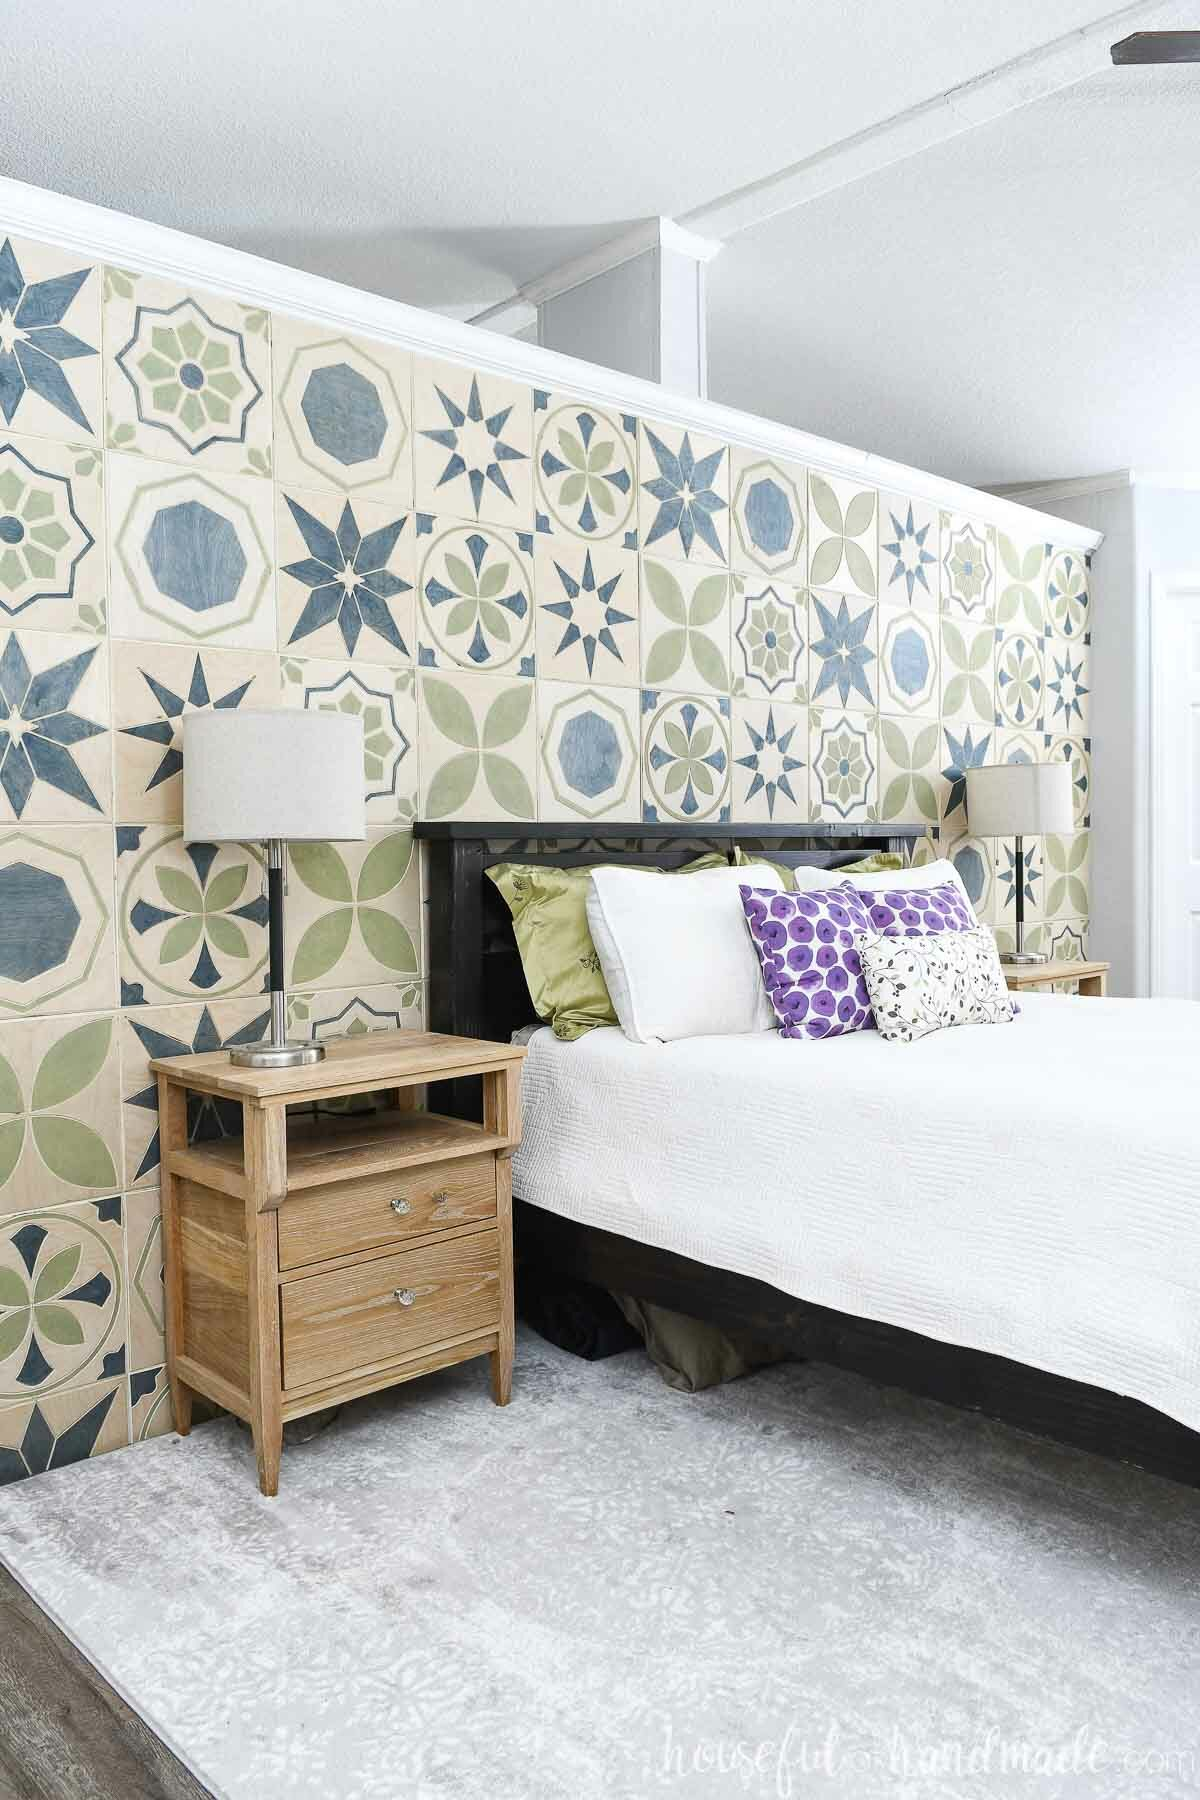 Master bedroom with a DIY accent wall made of patterned wood tiles on the wall behind the bed.